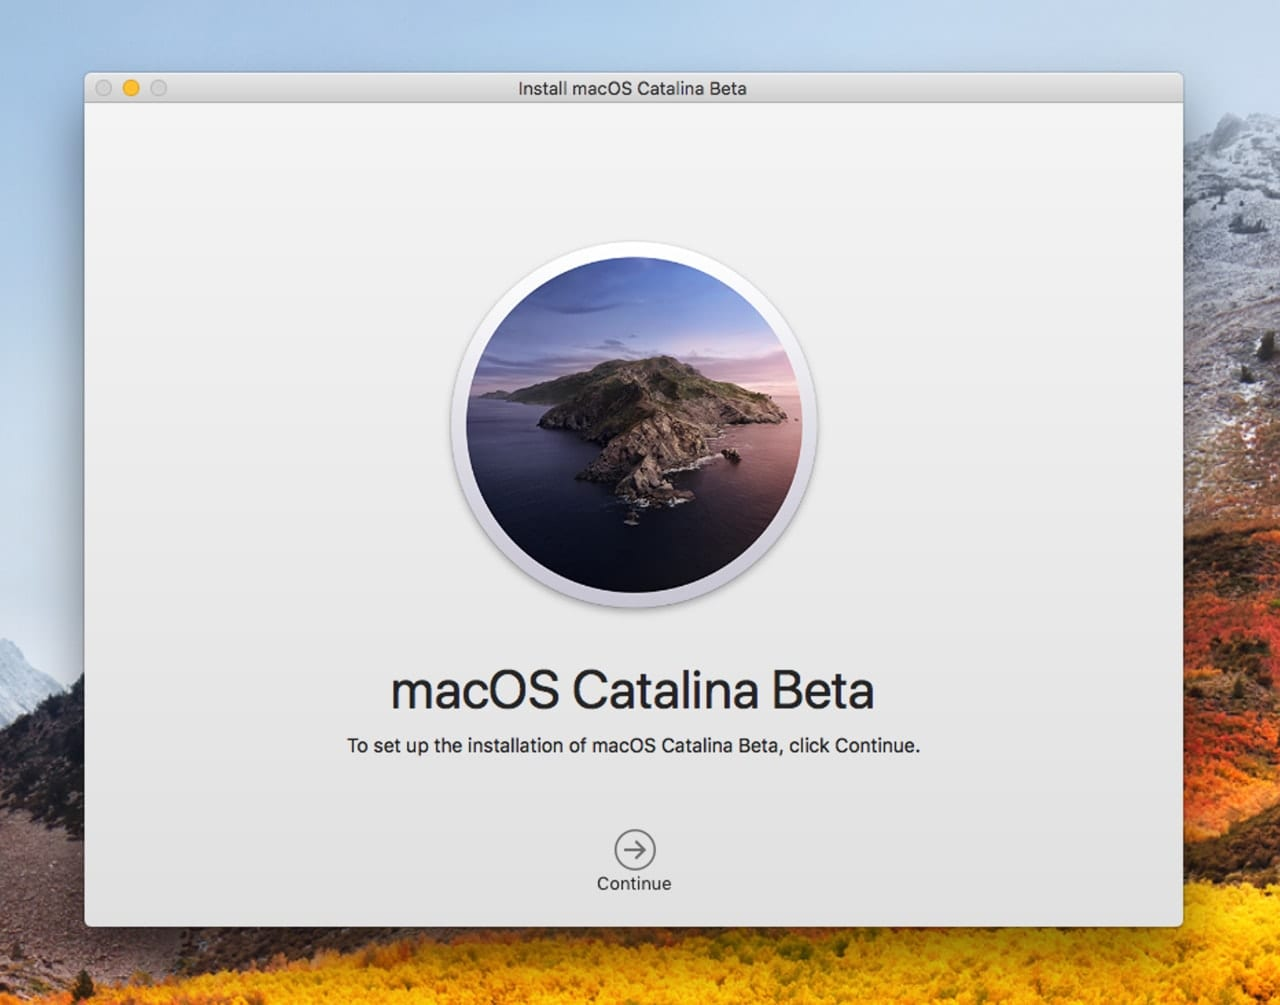 The macOS Catalina installer welcome screen.